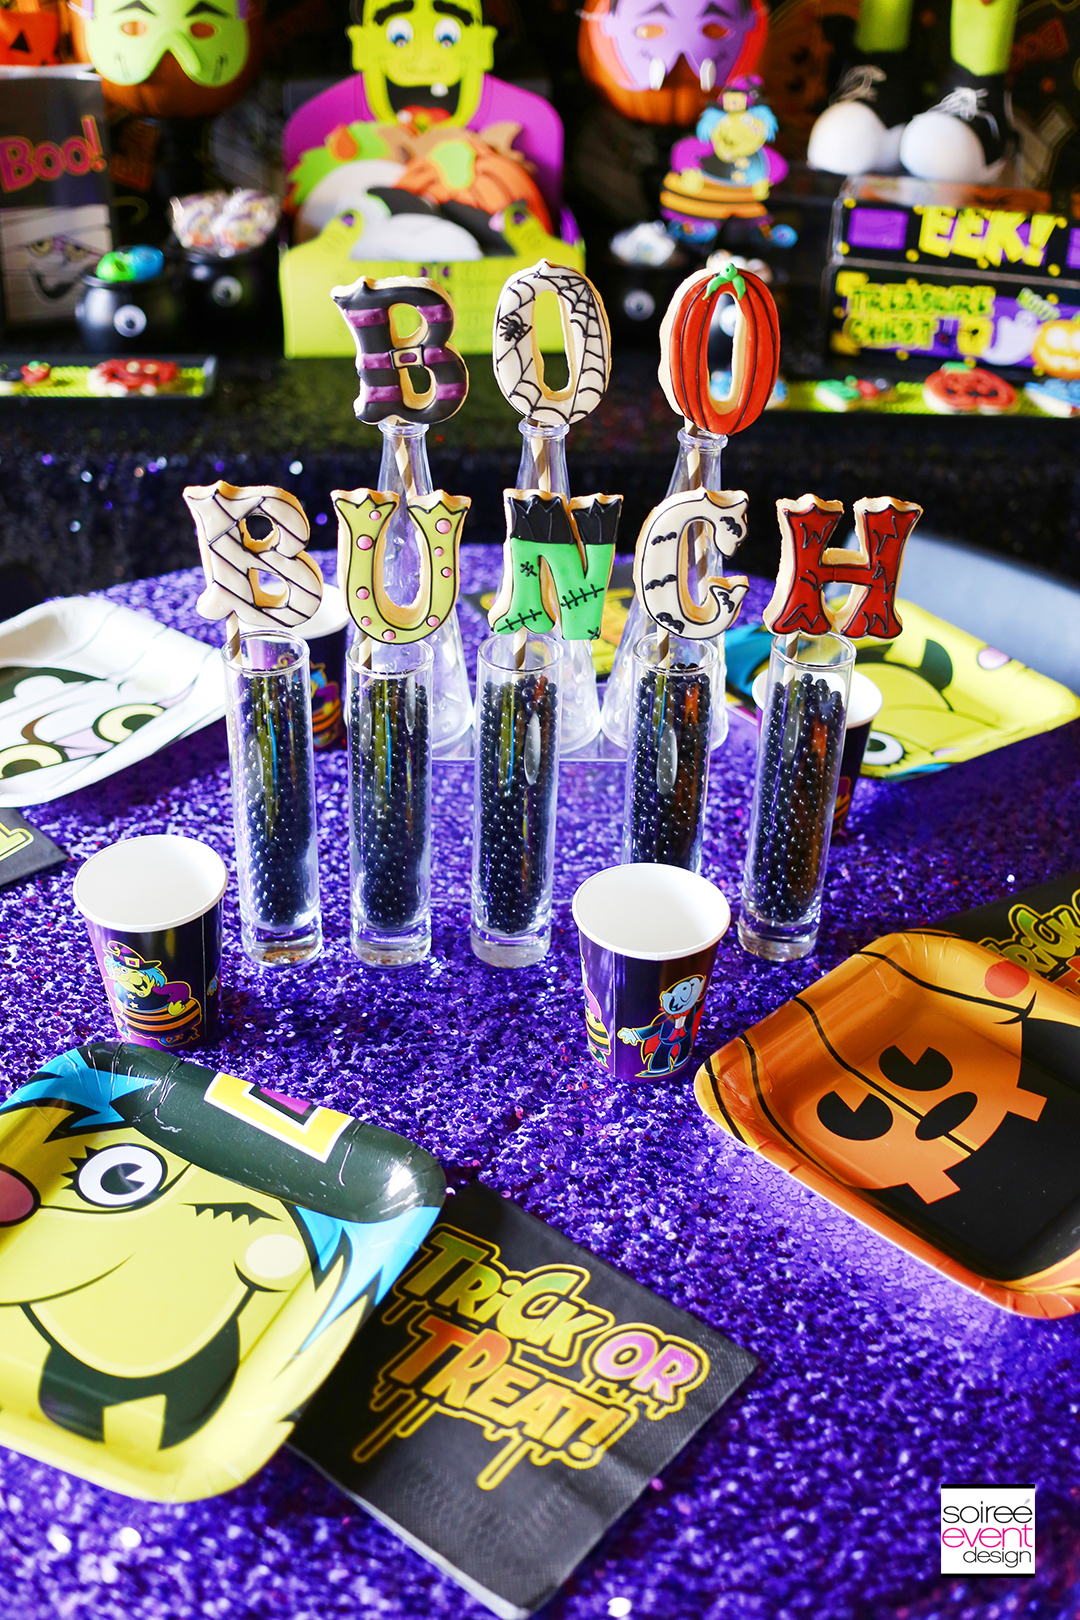 boo-bunch-halloween-party-dining-table